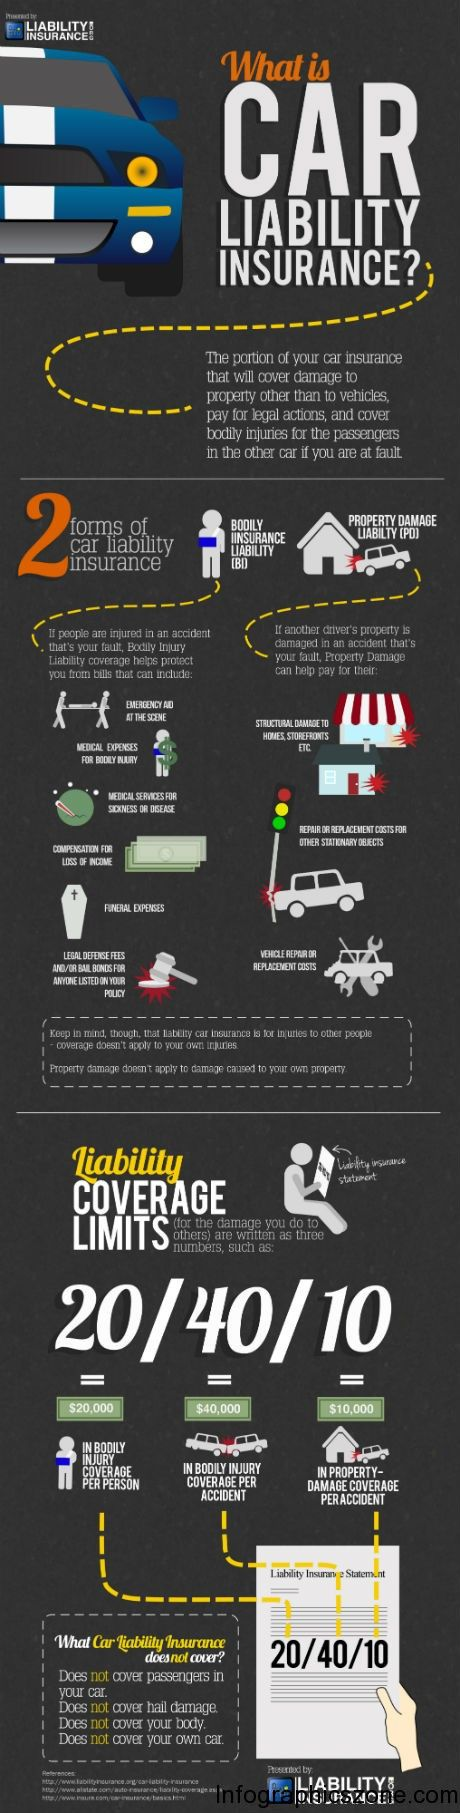 Liability of Car Insurance [Infographic]